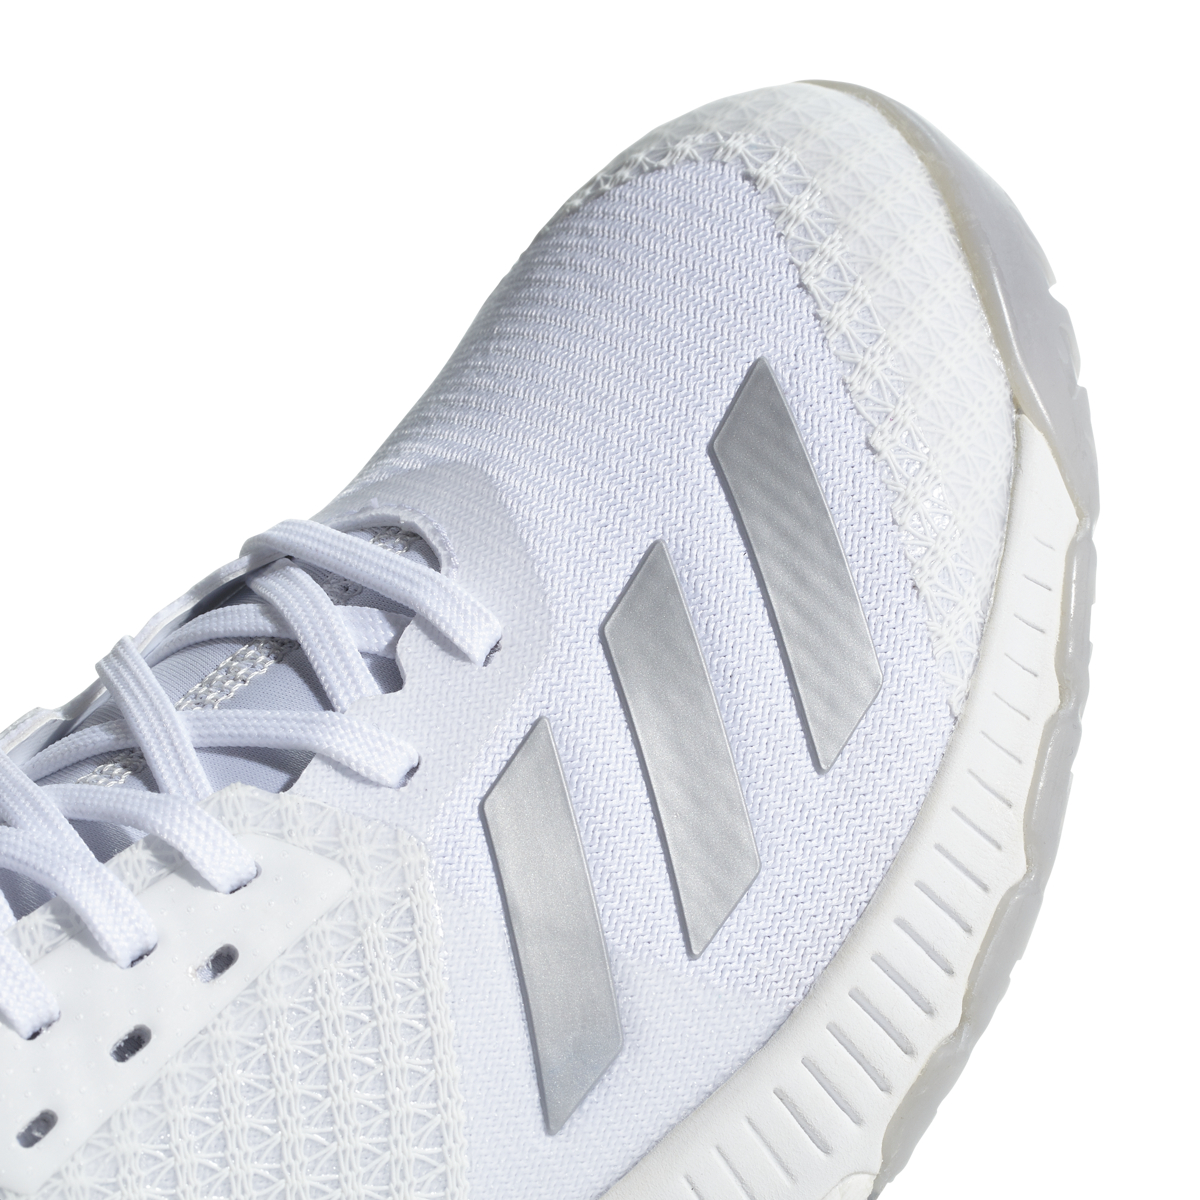 huge discount 3f25f ec237 Adidas Womens Crazyflight X 2 Mid Volleyball Shoe Adidas - Ships Directly  From - Walmart.com